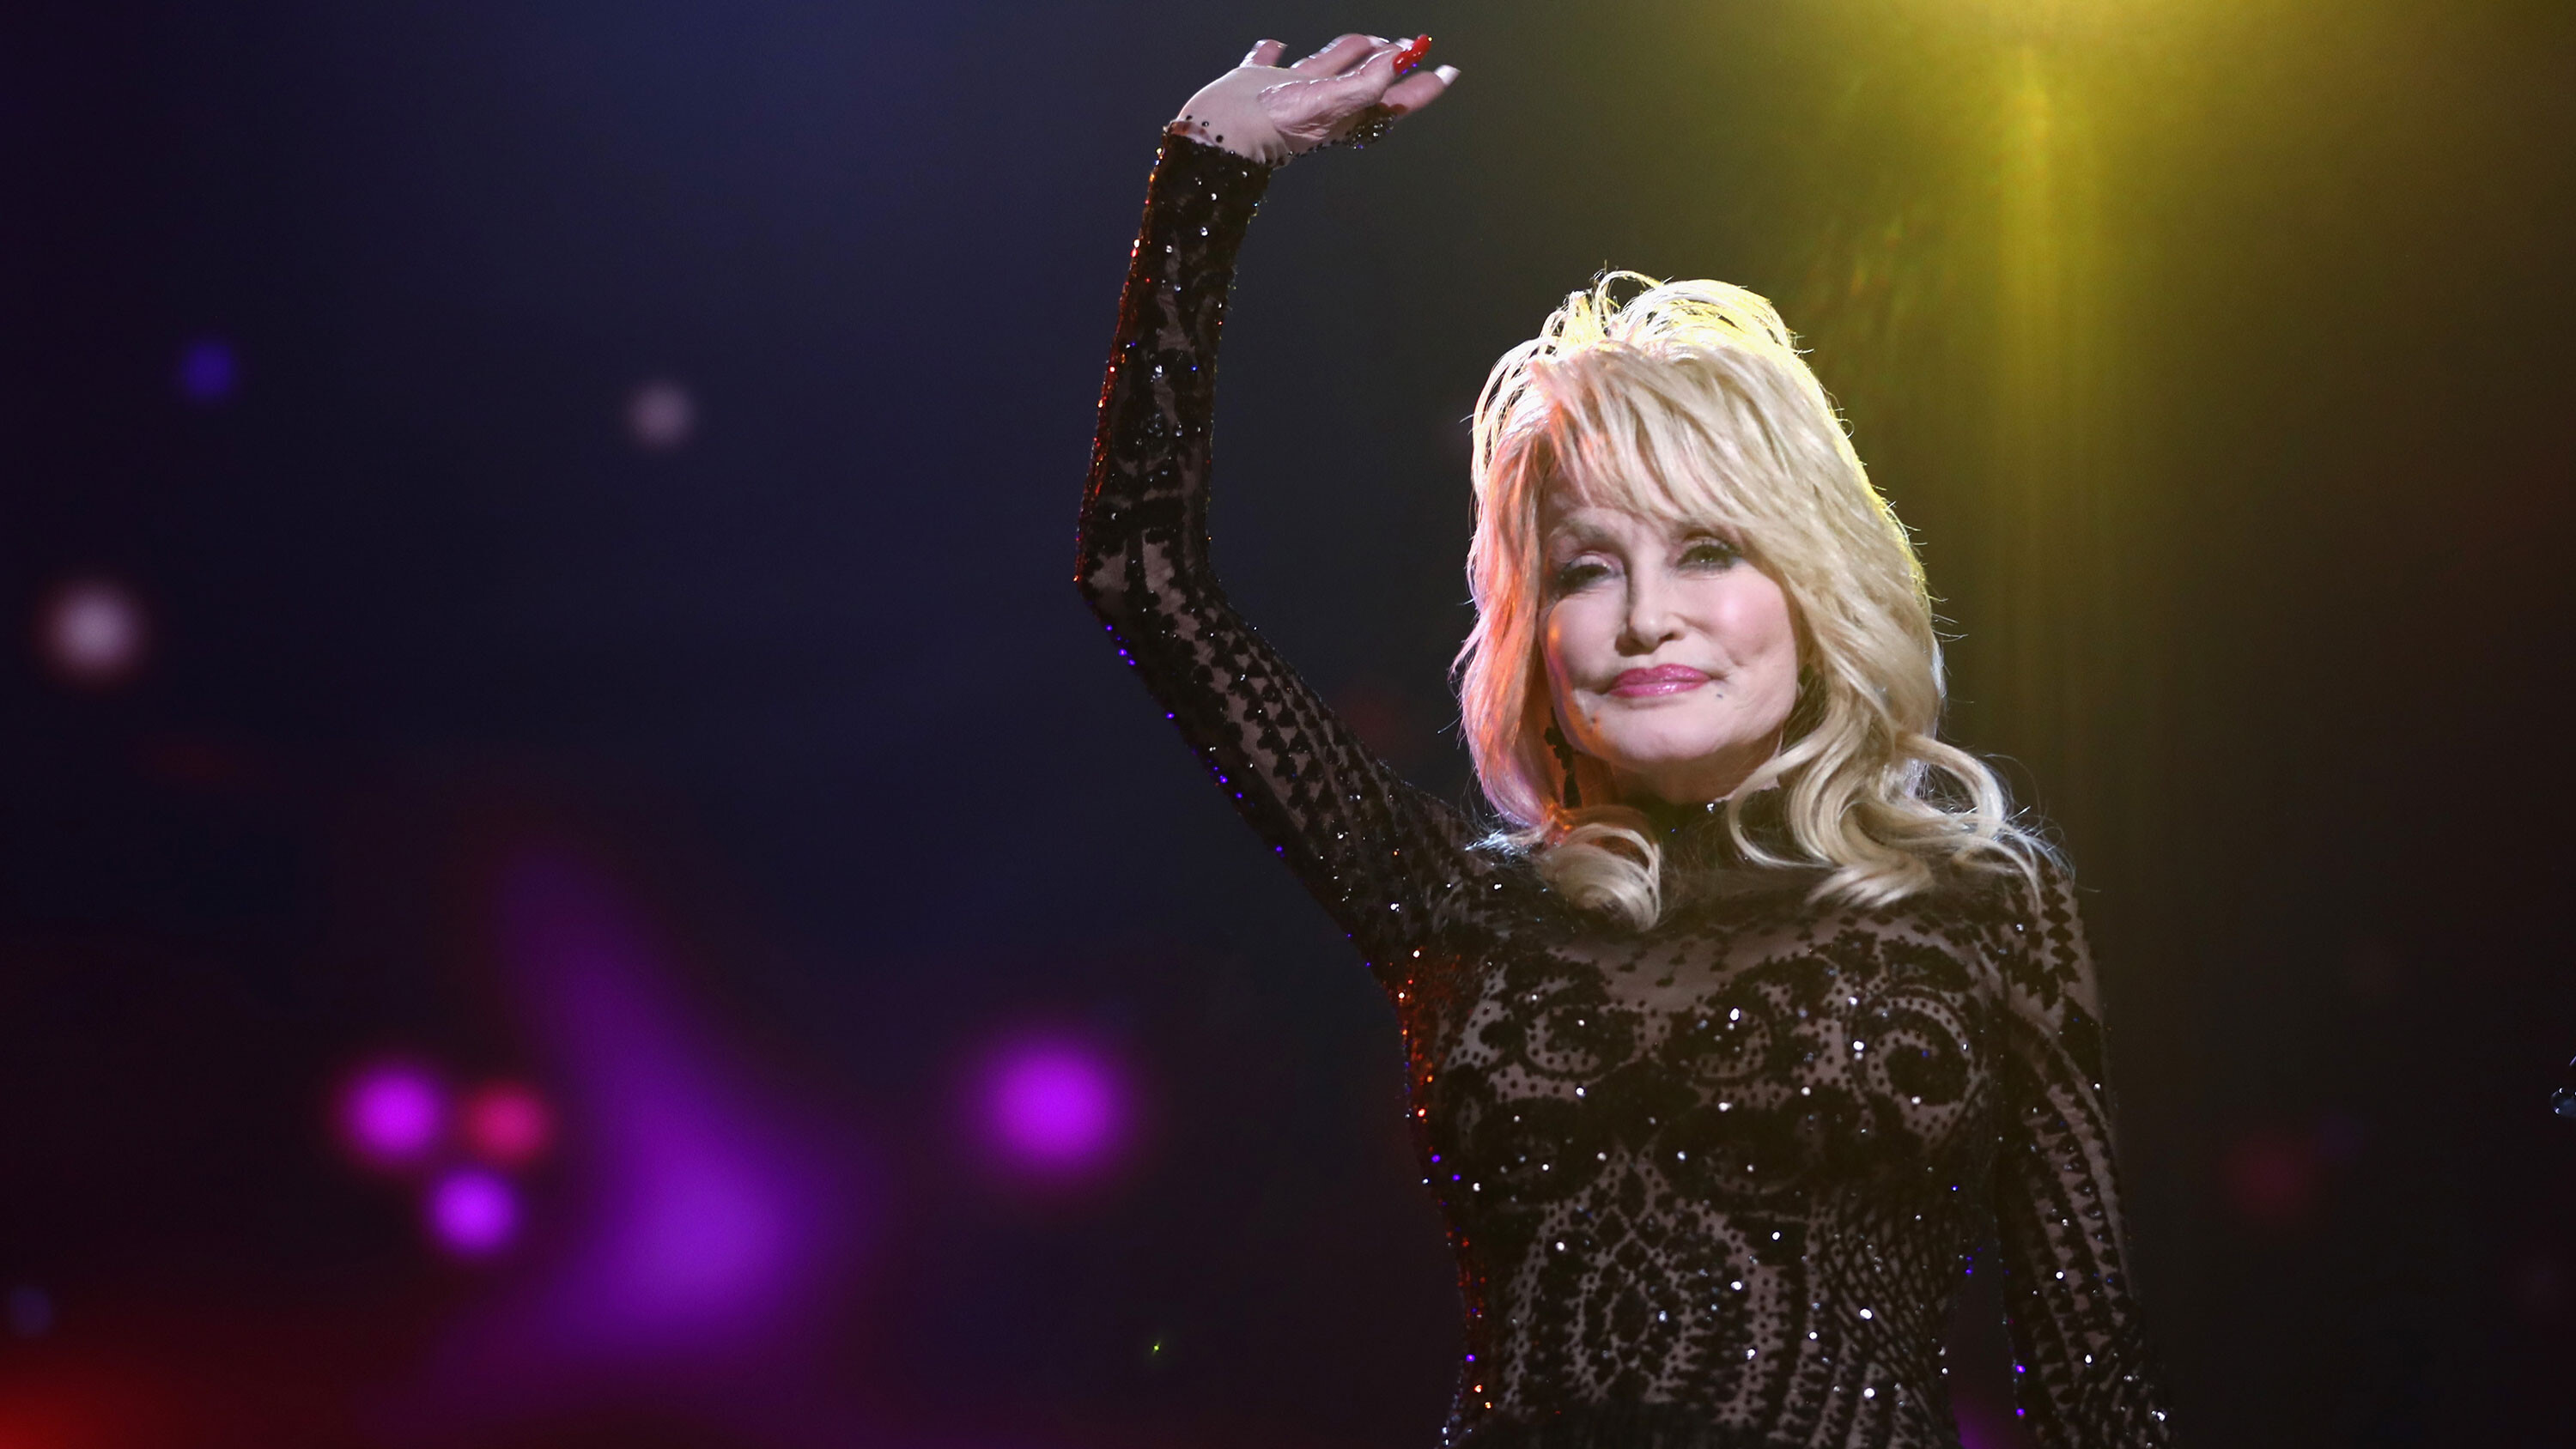 Dolly Parton reacts to Lil Nas X's cover of 'Jolene'